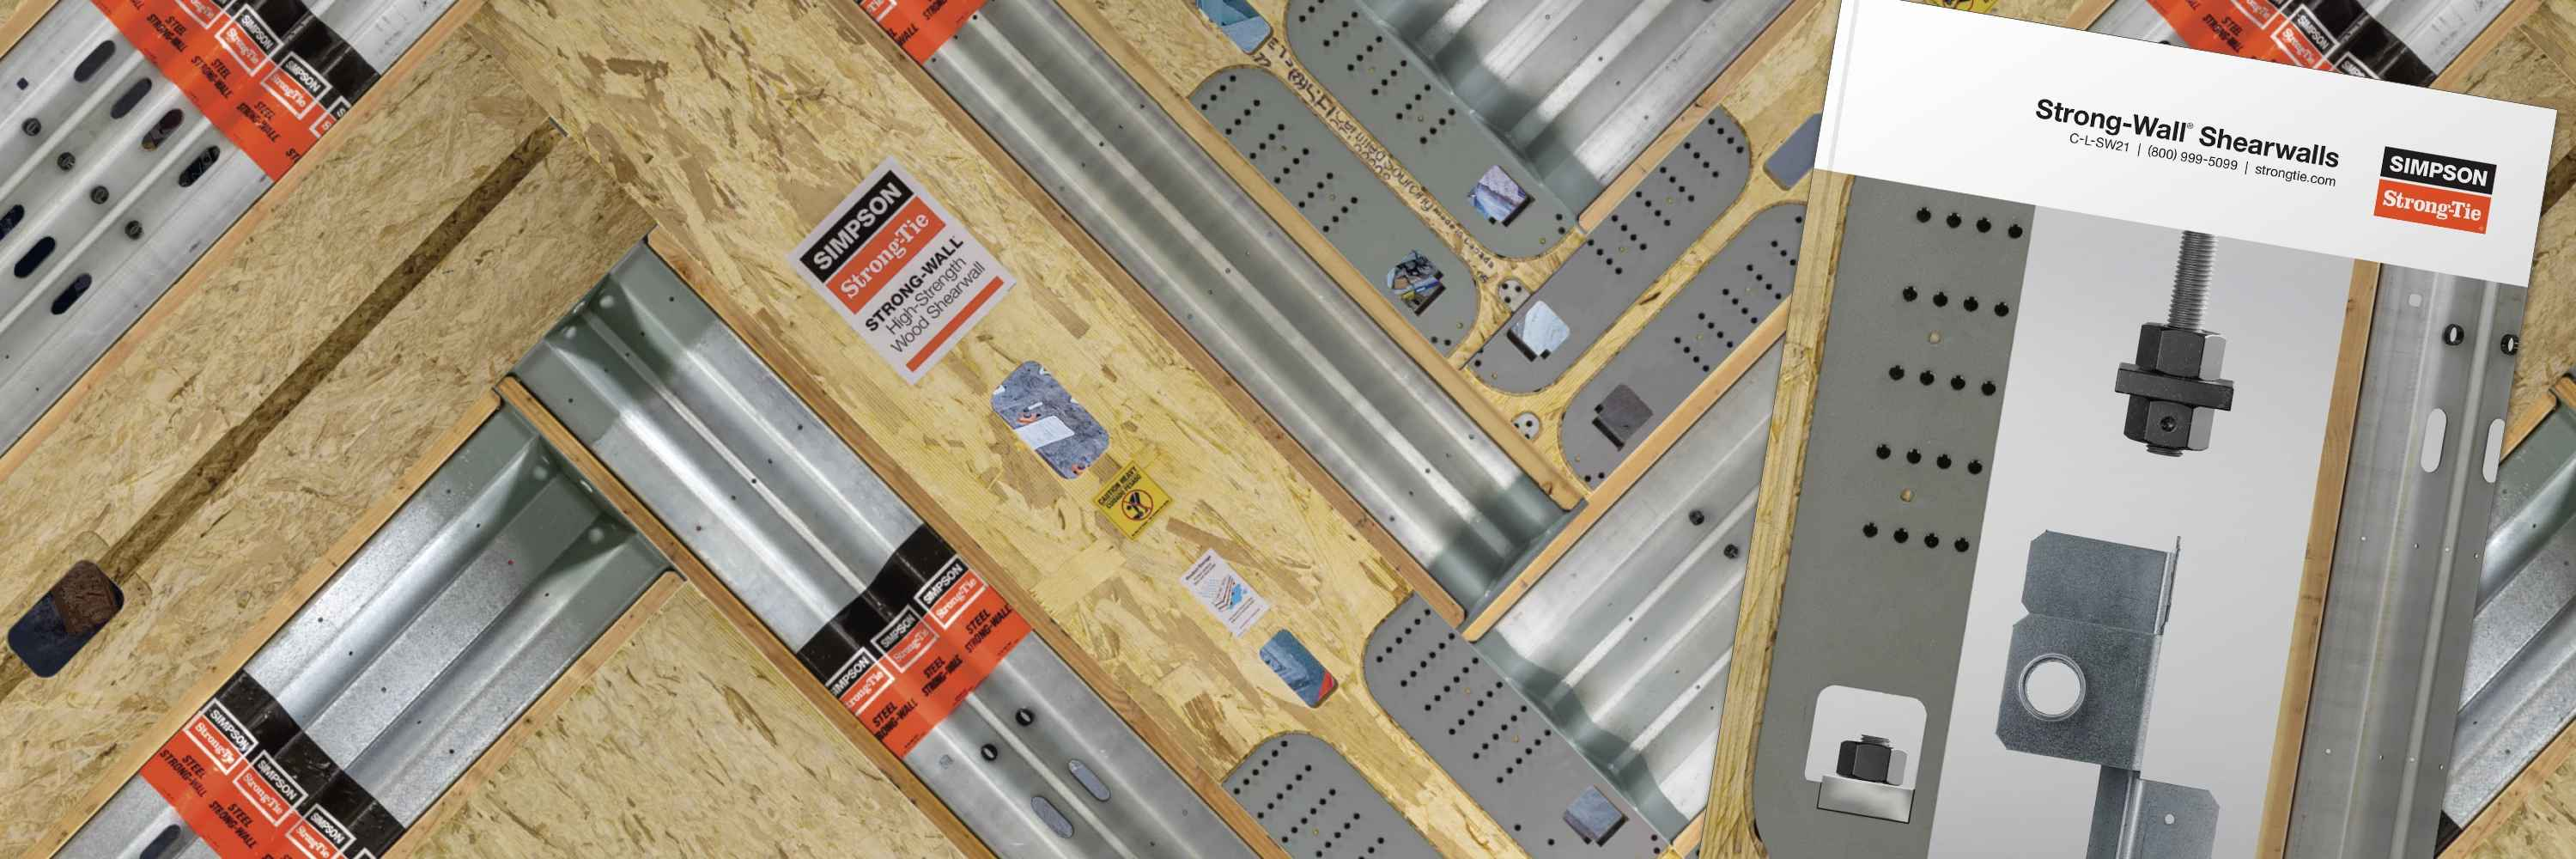 Strong-Wall® Shearwalls Catalog Available Now